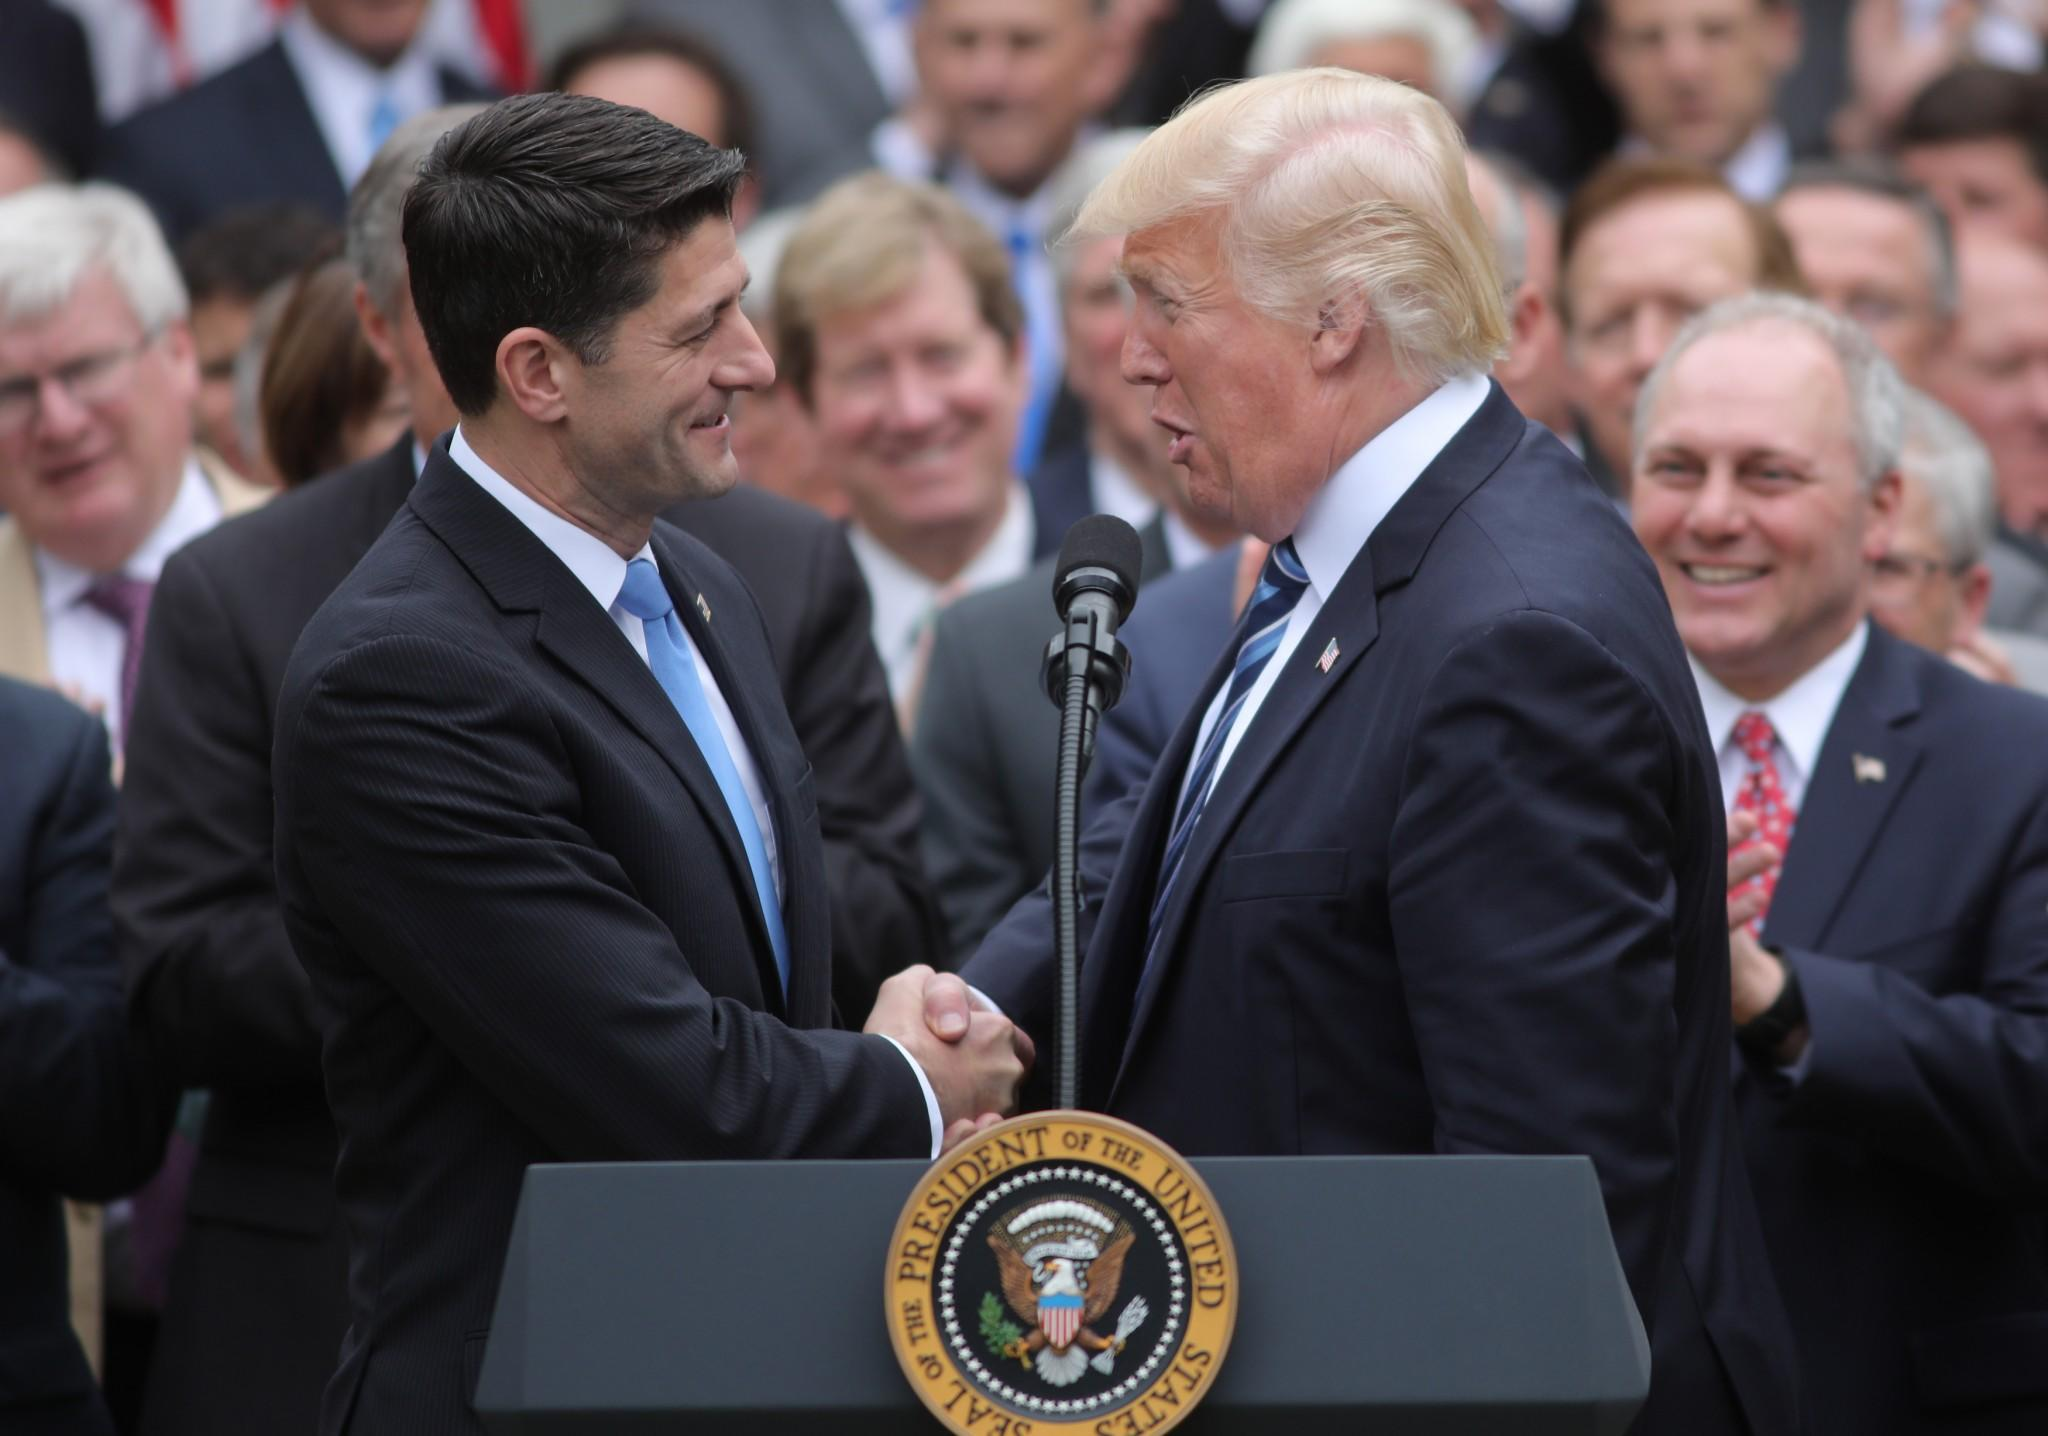 U.S. President Donald Trump congratulates House Speaker Paul Ryan (L) as he gathers with Congressional Republicans in the Rose Garden of the White House after the House of Representatives approved the American Healthcare Act, to repeal major parts of Obamacare and replace it with the Republican healthcare plan, in Washington, U.S., May 4, 2017. (Photo: Carlos Barria/Reuters)